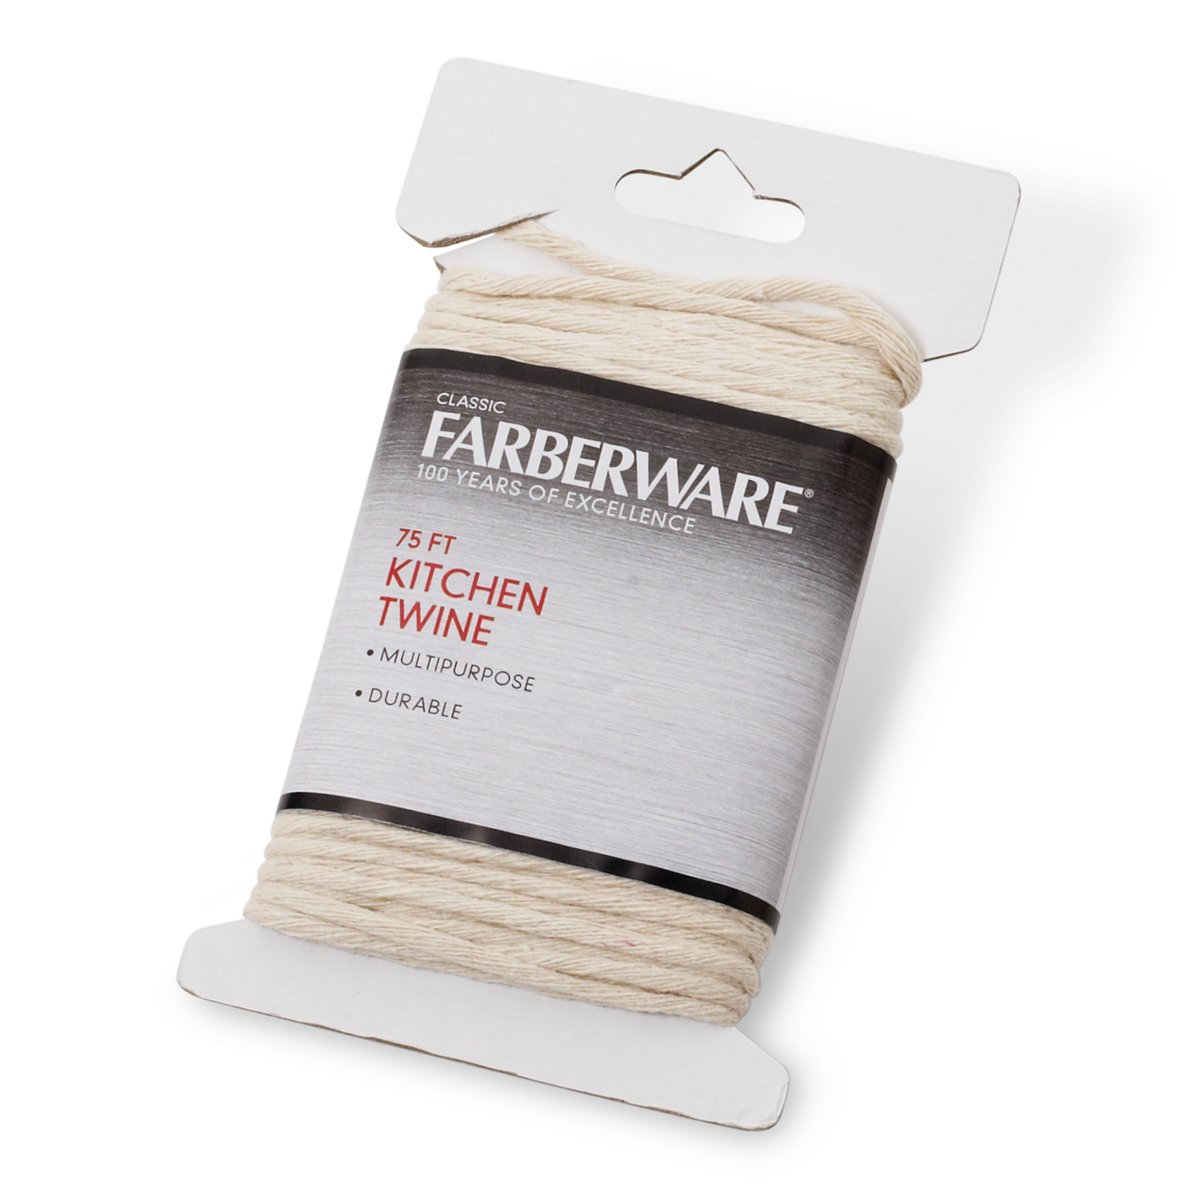 Farberware 5081722 Classic Kitchen Twine, 75-Feet, Small, White Lifetime Brands